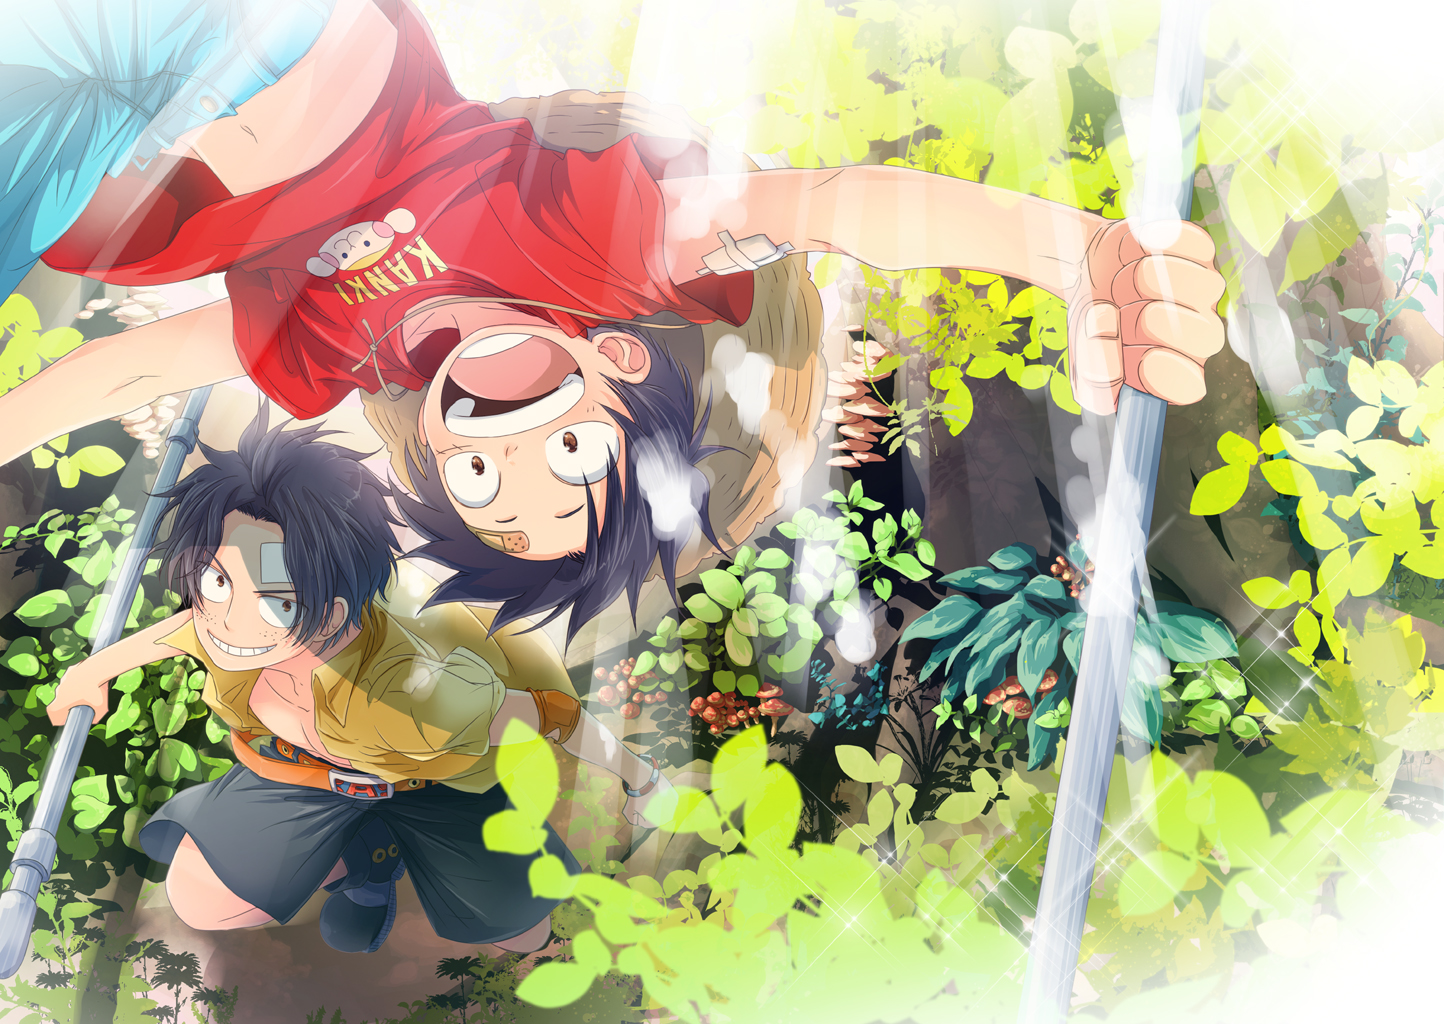 Luffy and Ace Wallpaper and Background Image | 1444x1024 | ID:650008 - Wallpaper Abyss